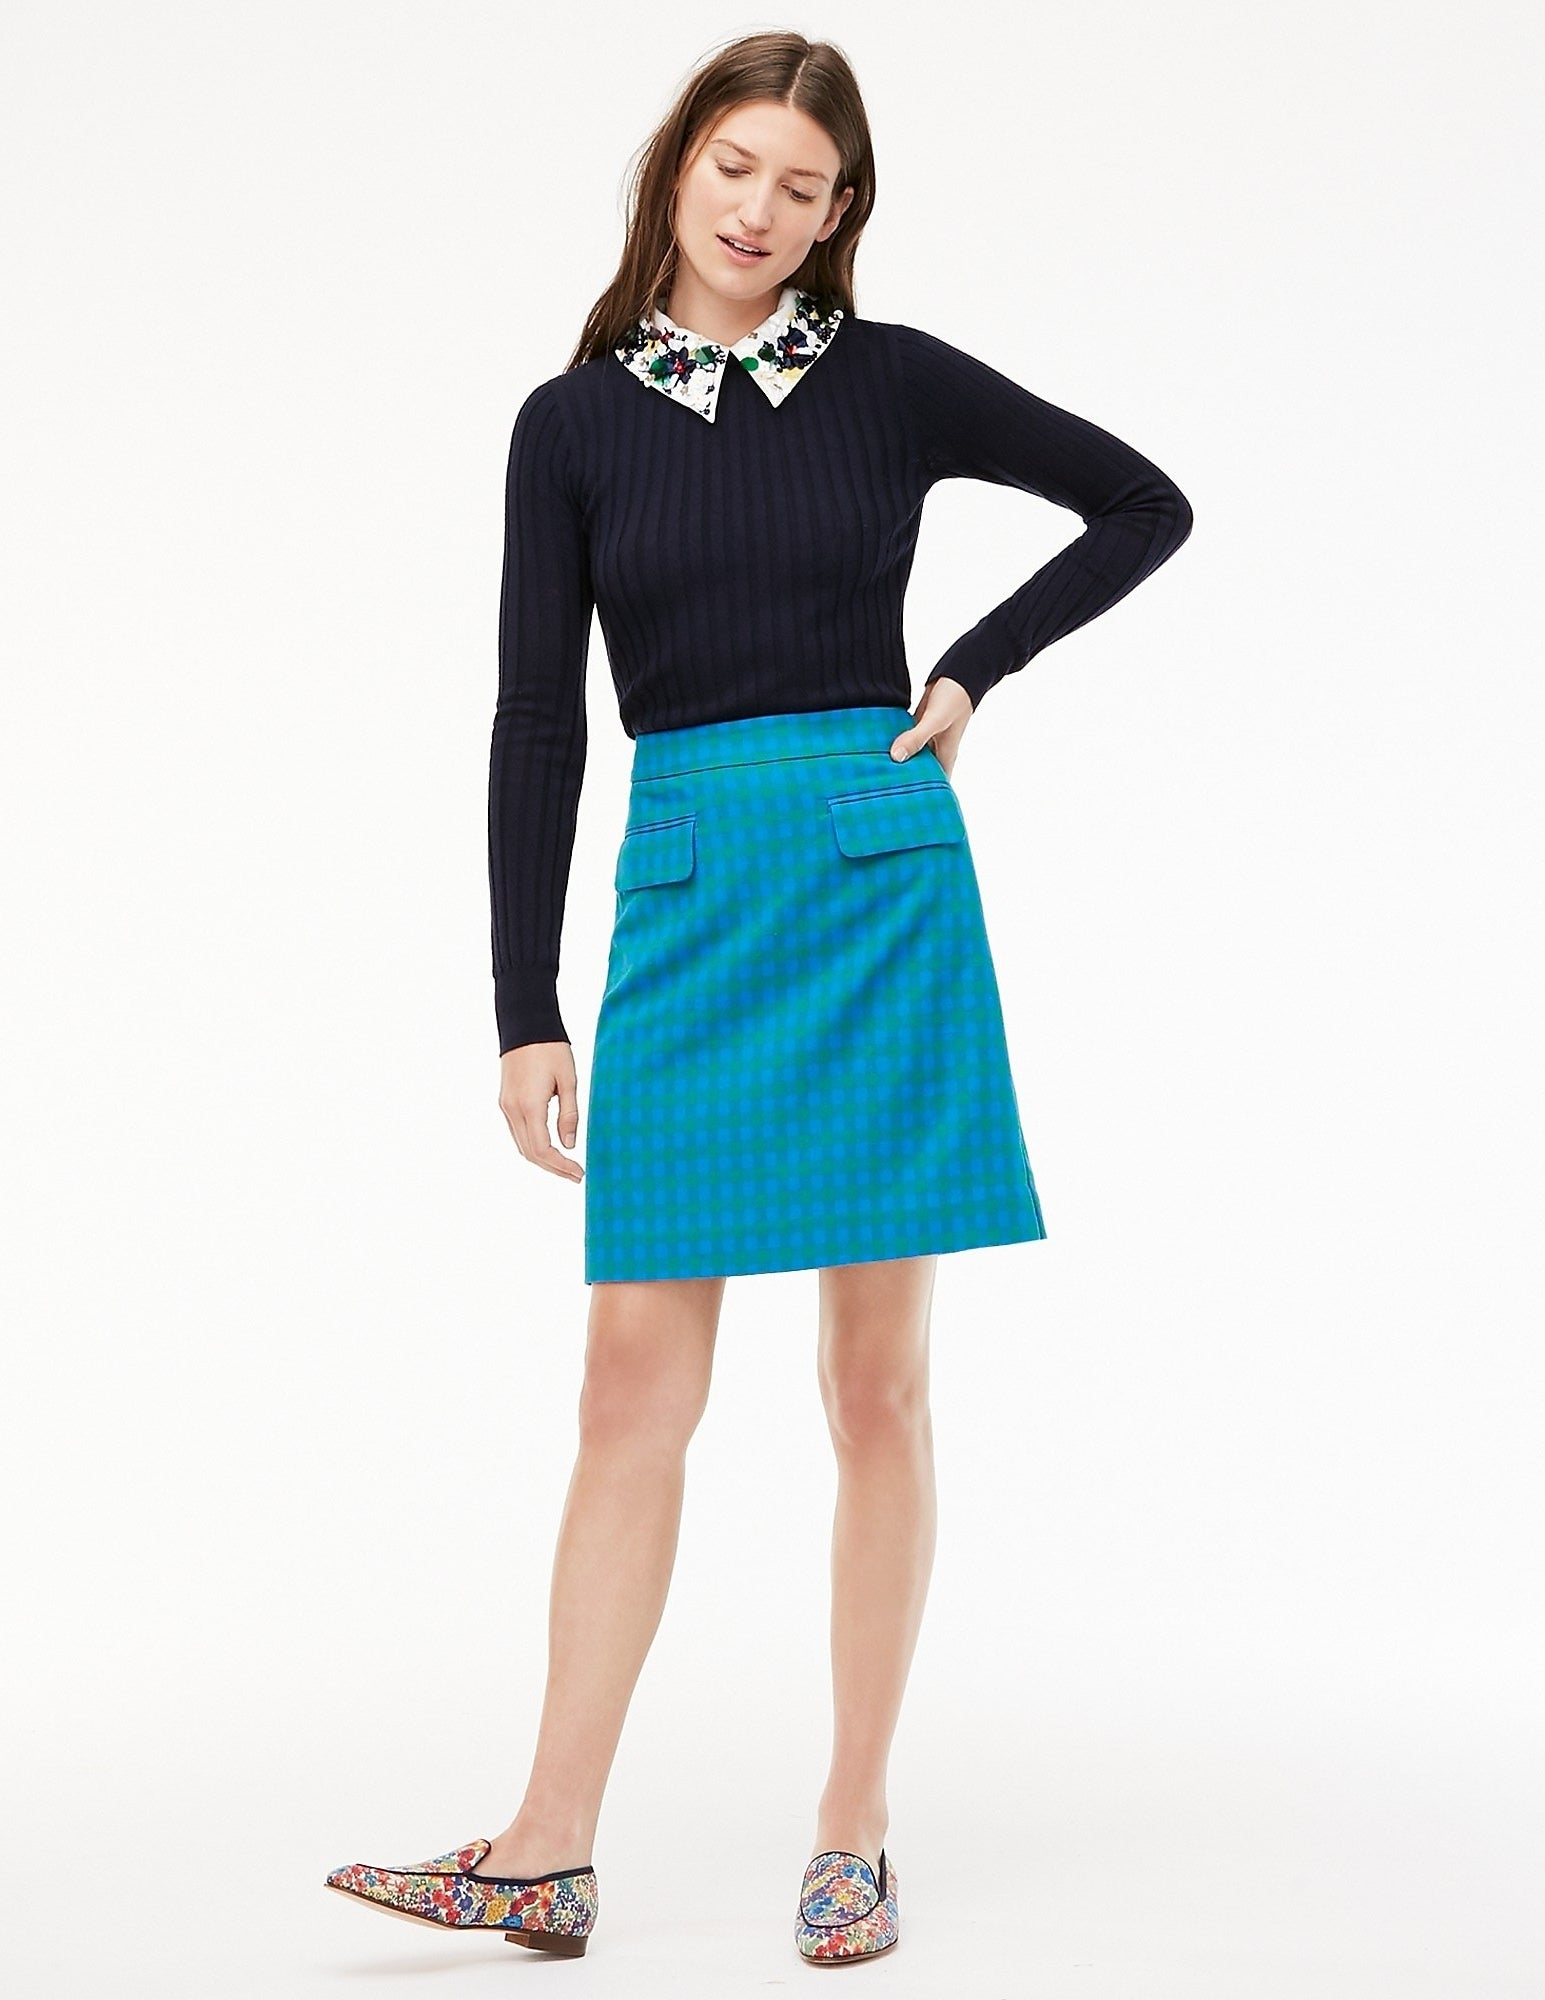 model in teal and green plaid mid thigh skirt with two front pocket flaps